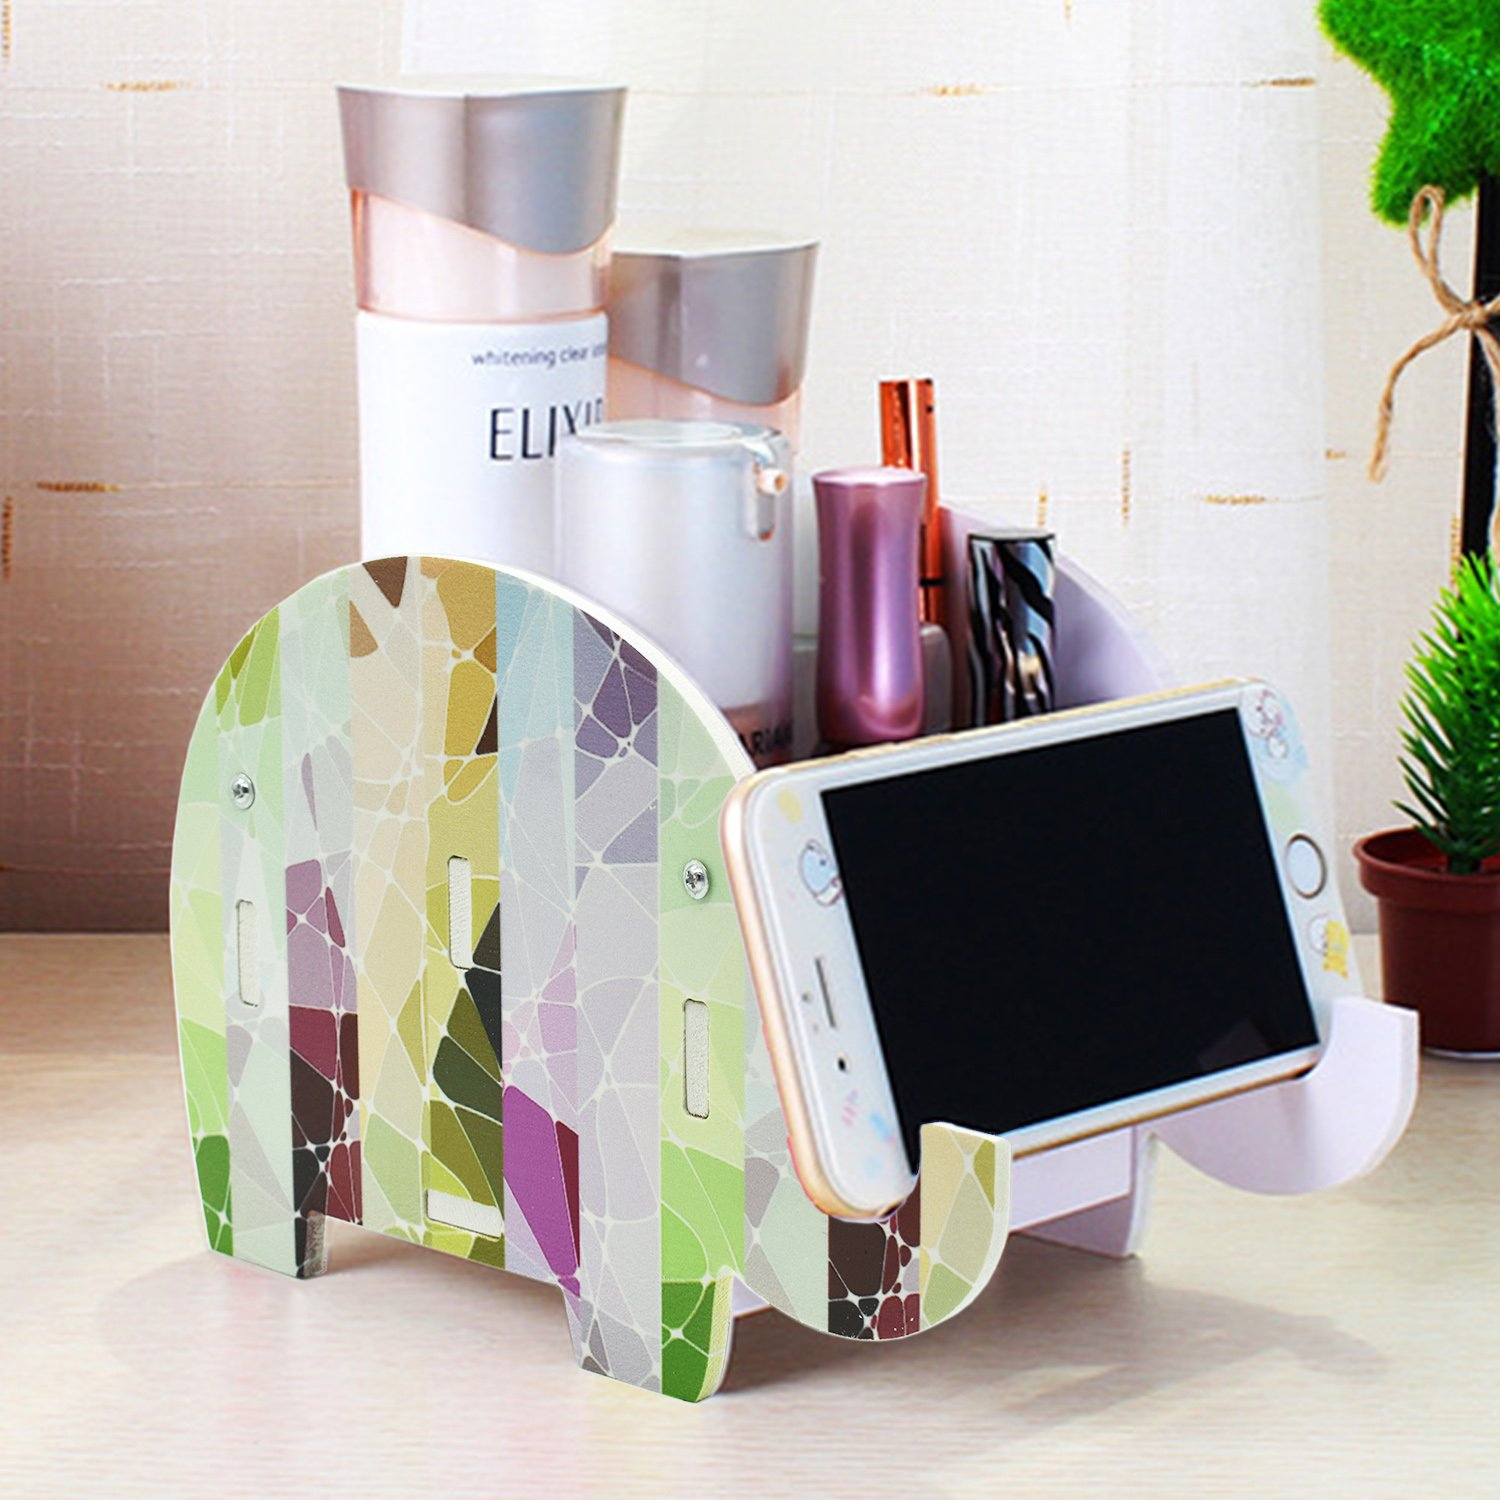 (B: Striped Elephant) Desk Supplies Organiser, Mokani Creative Elephant Pencil Holder Multifunctional Office Accessories Desk Decoration with Cell Phone Stand Tablet Desk Bracket for iPad iPhone Smartphone and more B07BJGS54T B: Striped Elephant B: Striped Elephant